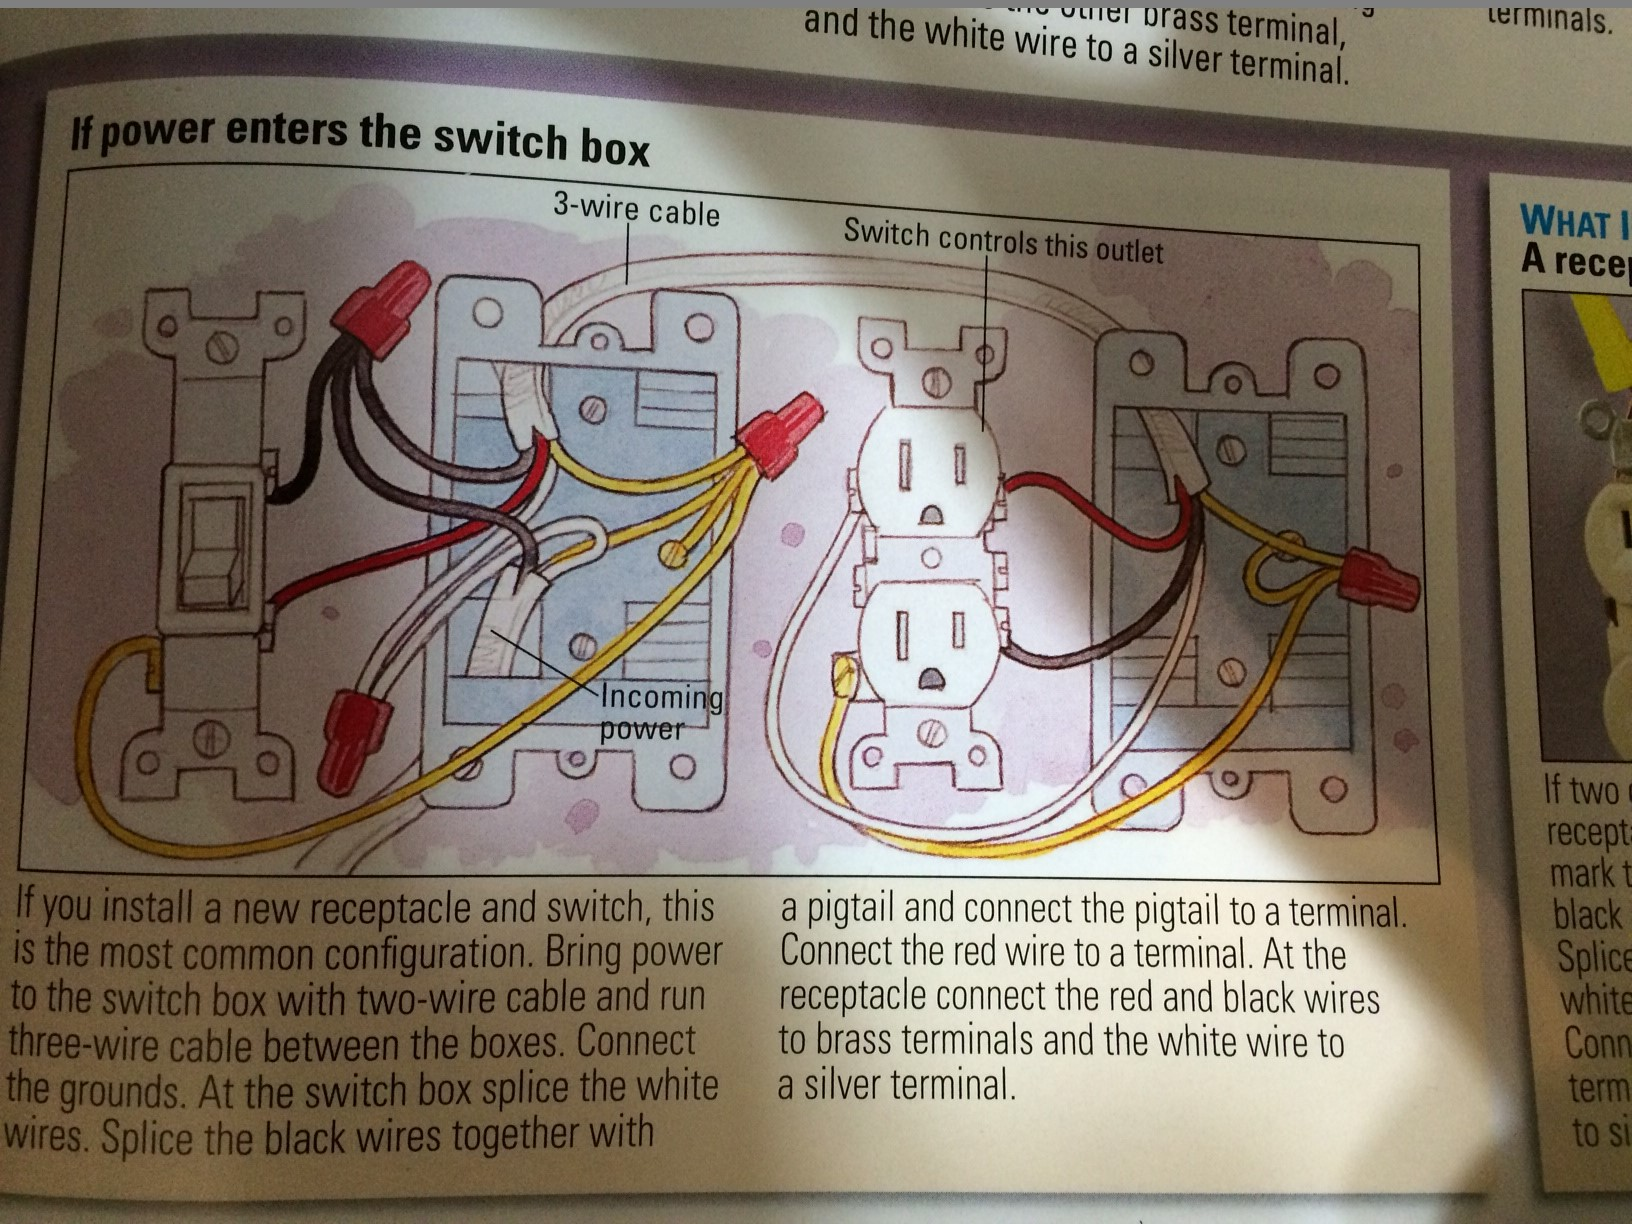 hight resolution of electrical how should i wire 2 switches that control 1 light and 1 light switch wiring on review of switched outlet wiring power enters